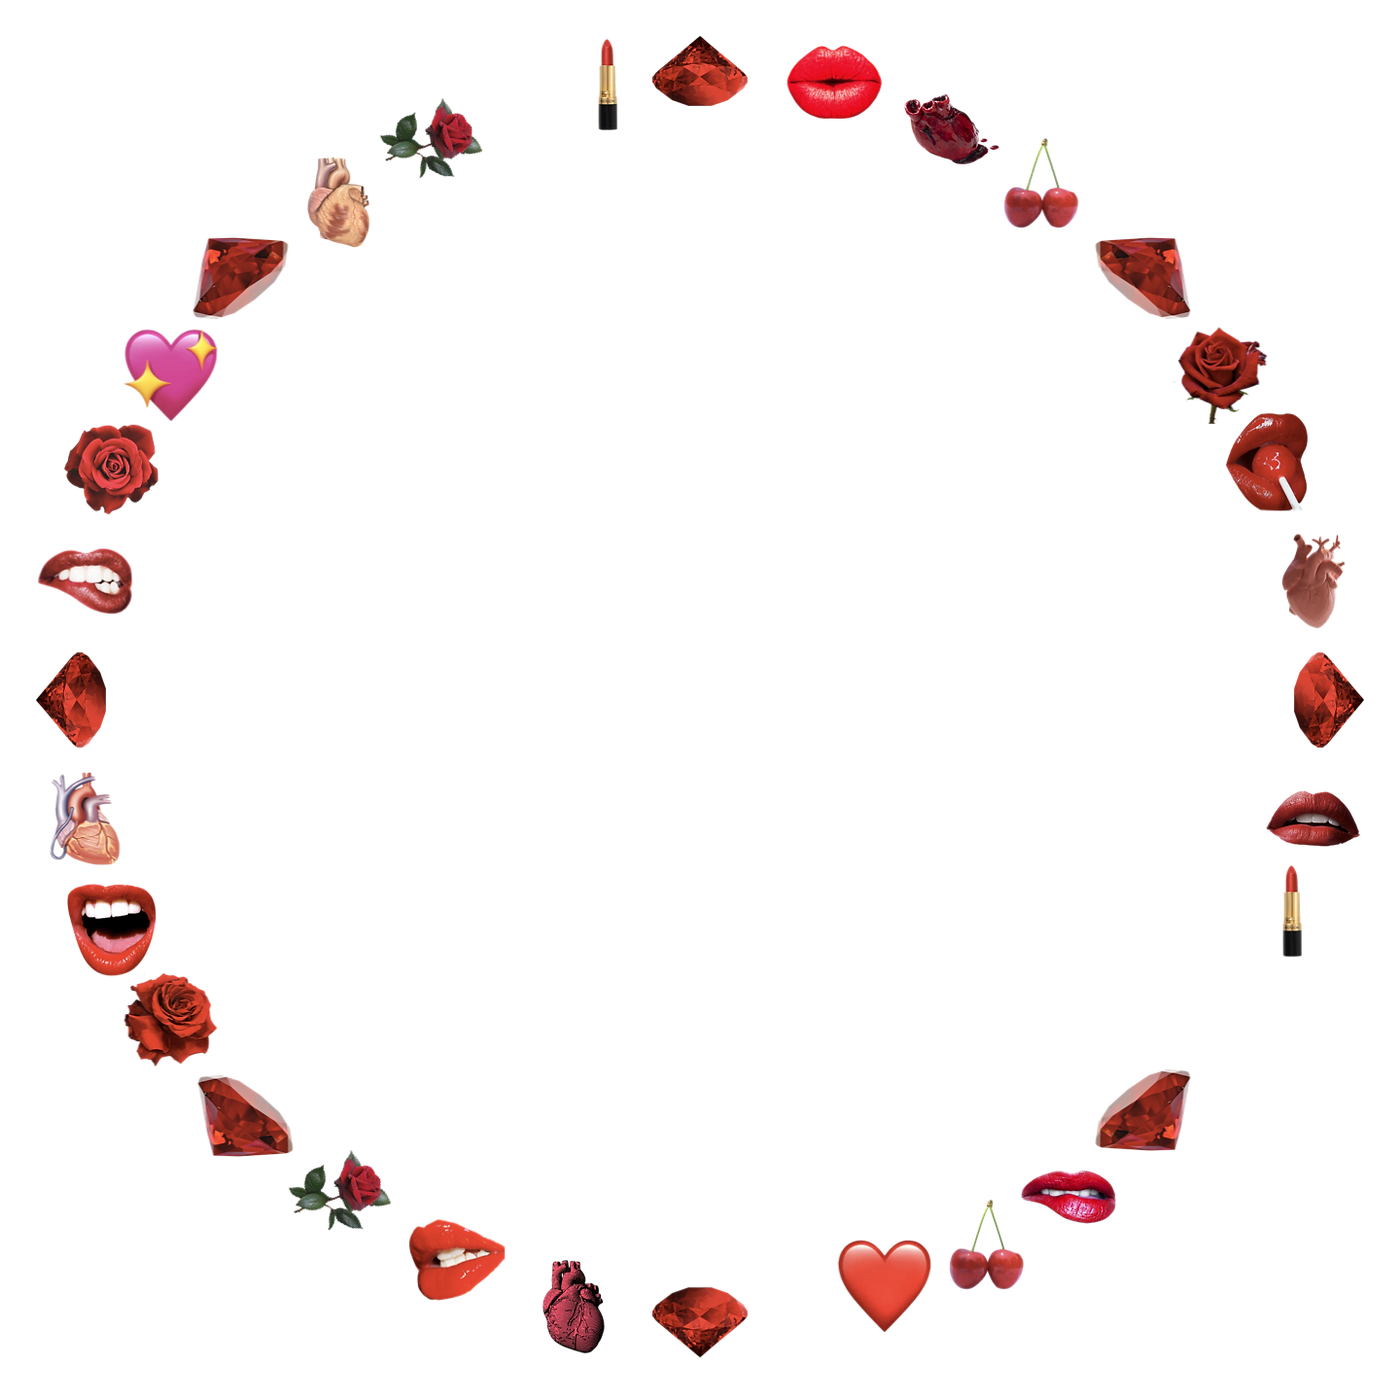 A circle of red: hearts, lips, lingerie, rubies, cherries